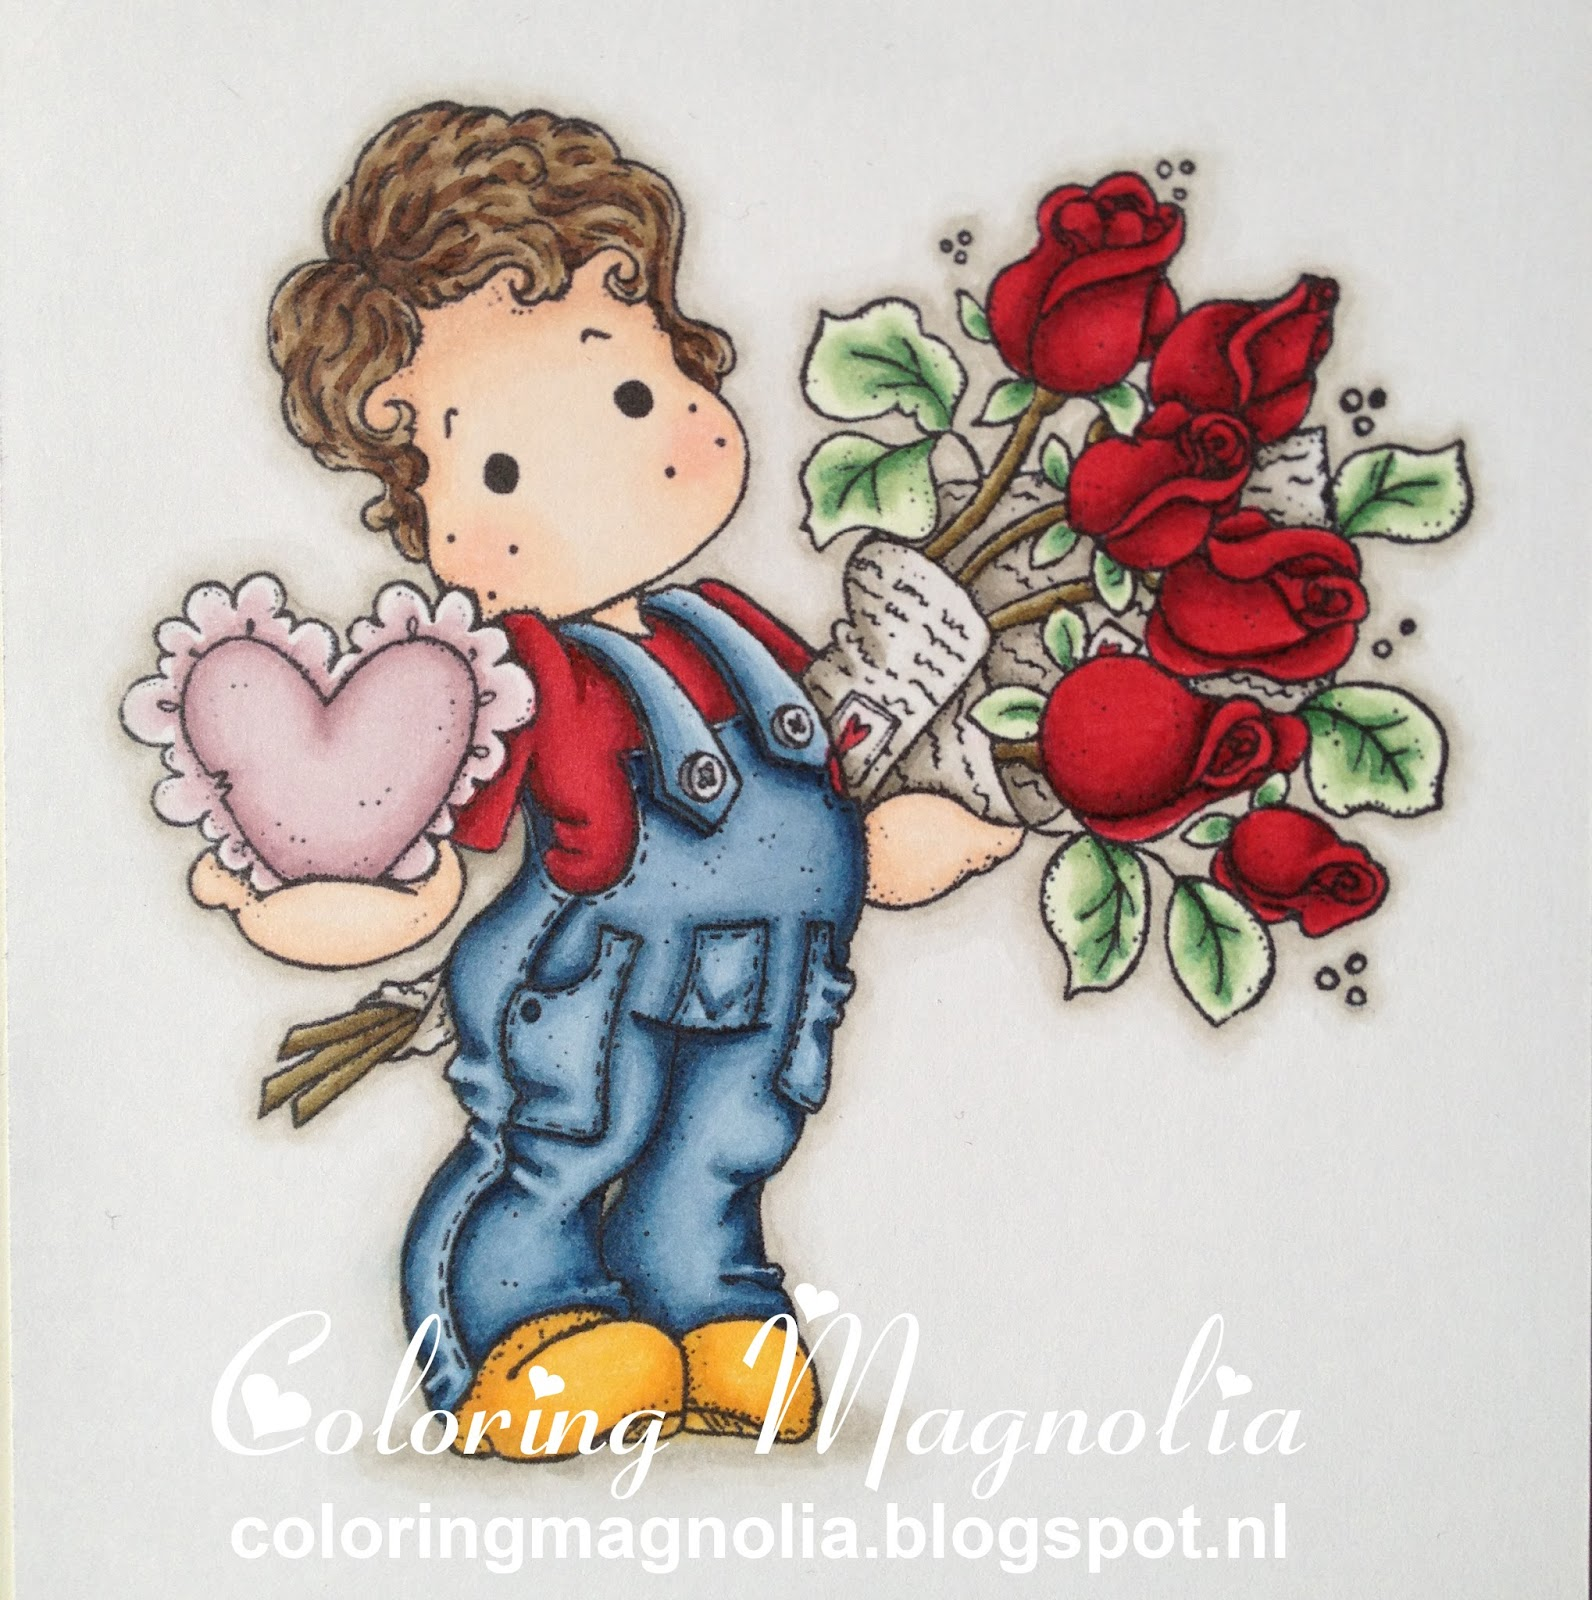 Coloring Magnolia Stamp 2013 With Love Collection - Charming Edwin